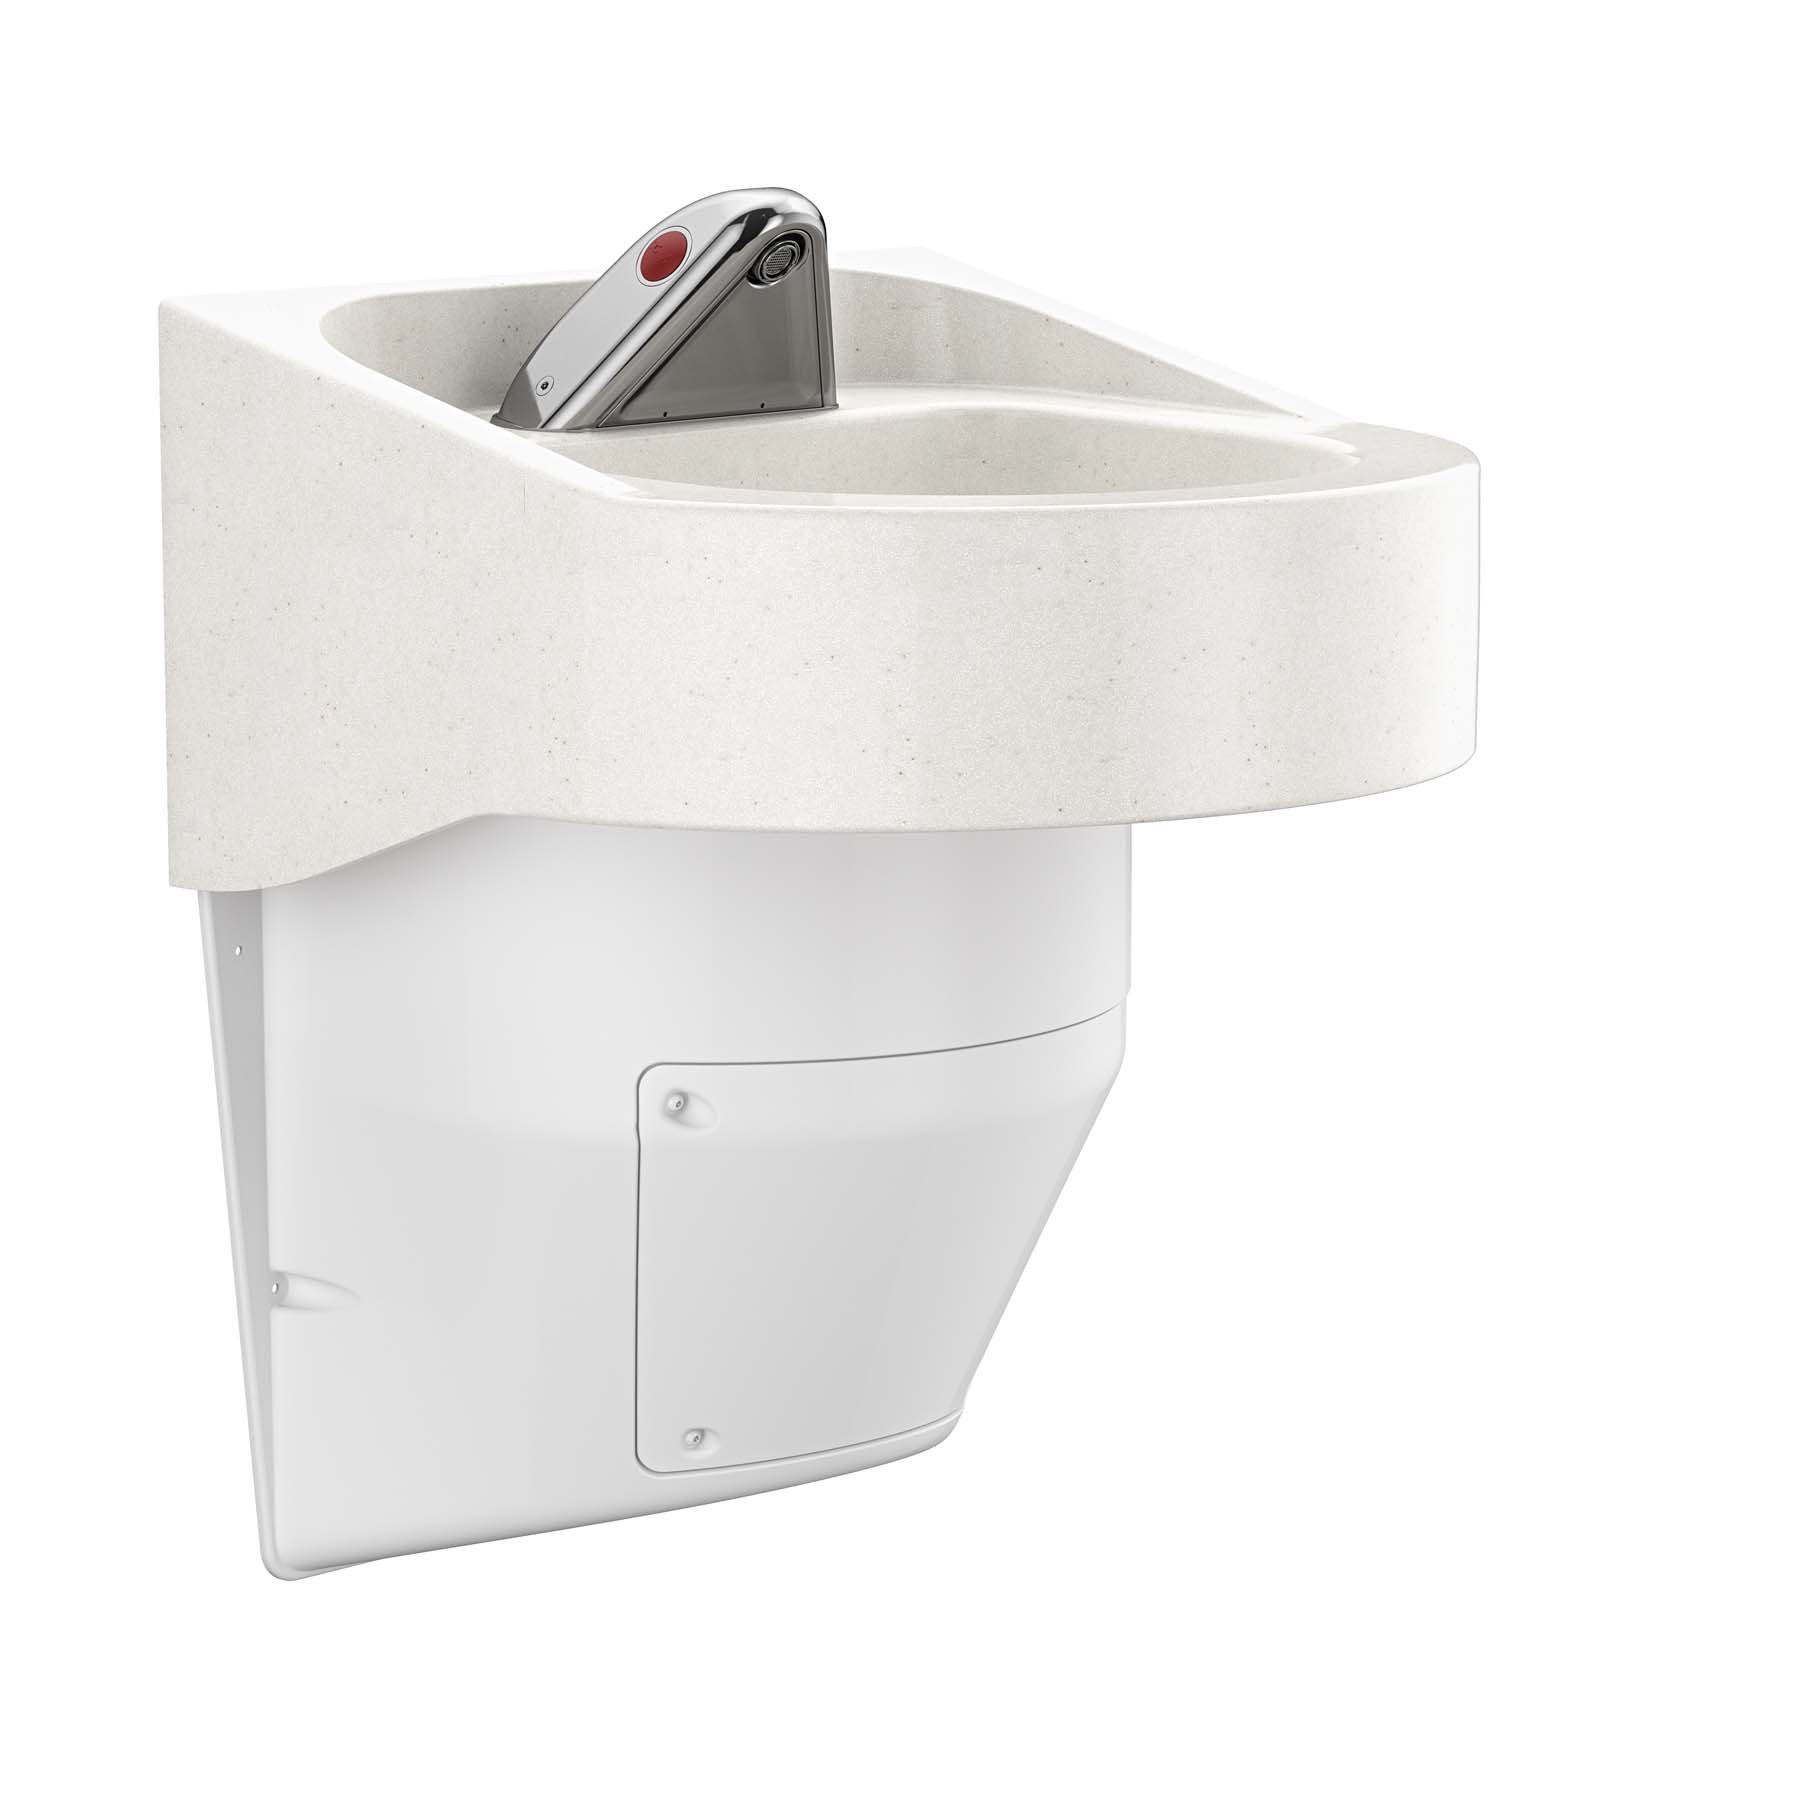 Ligature Resistant Sink and Trap Cover - Angled View